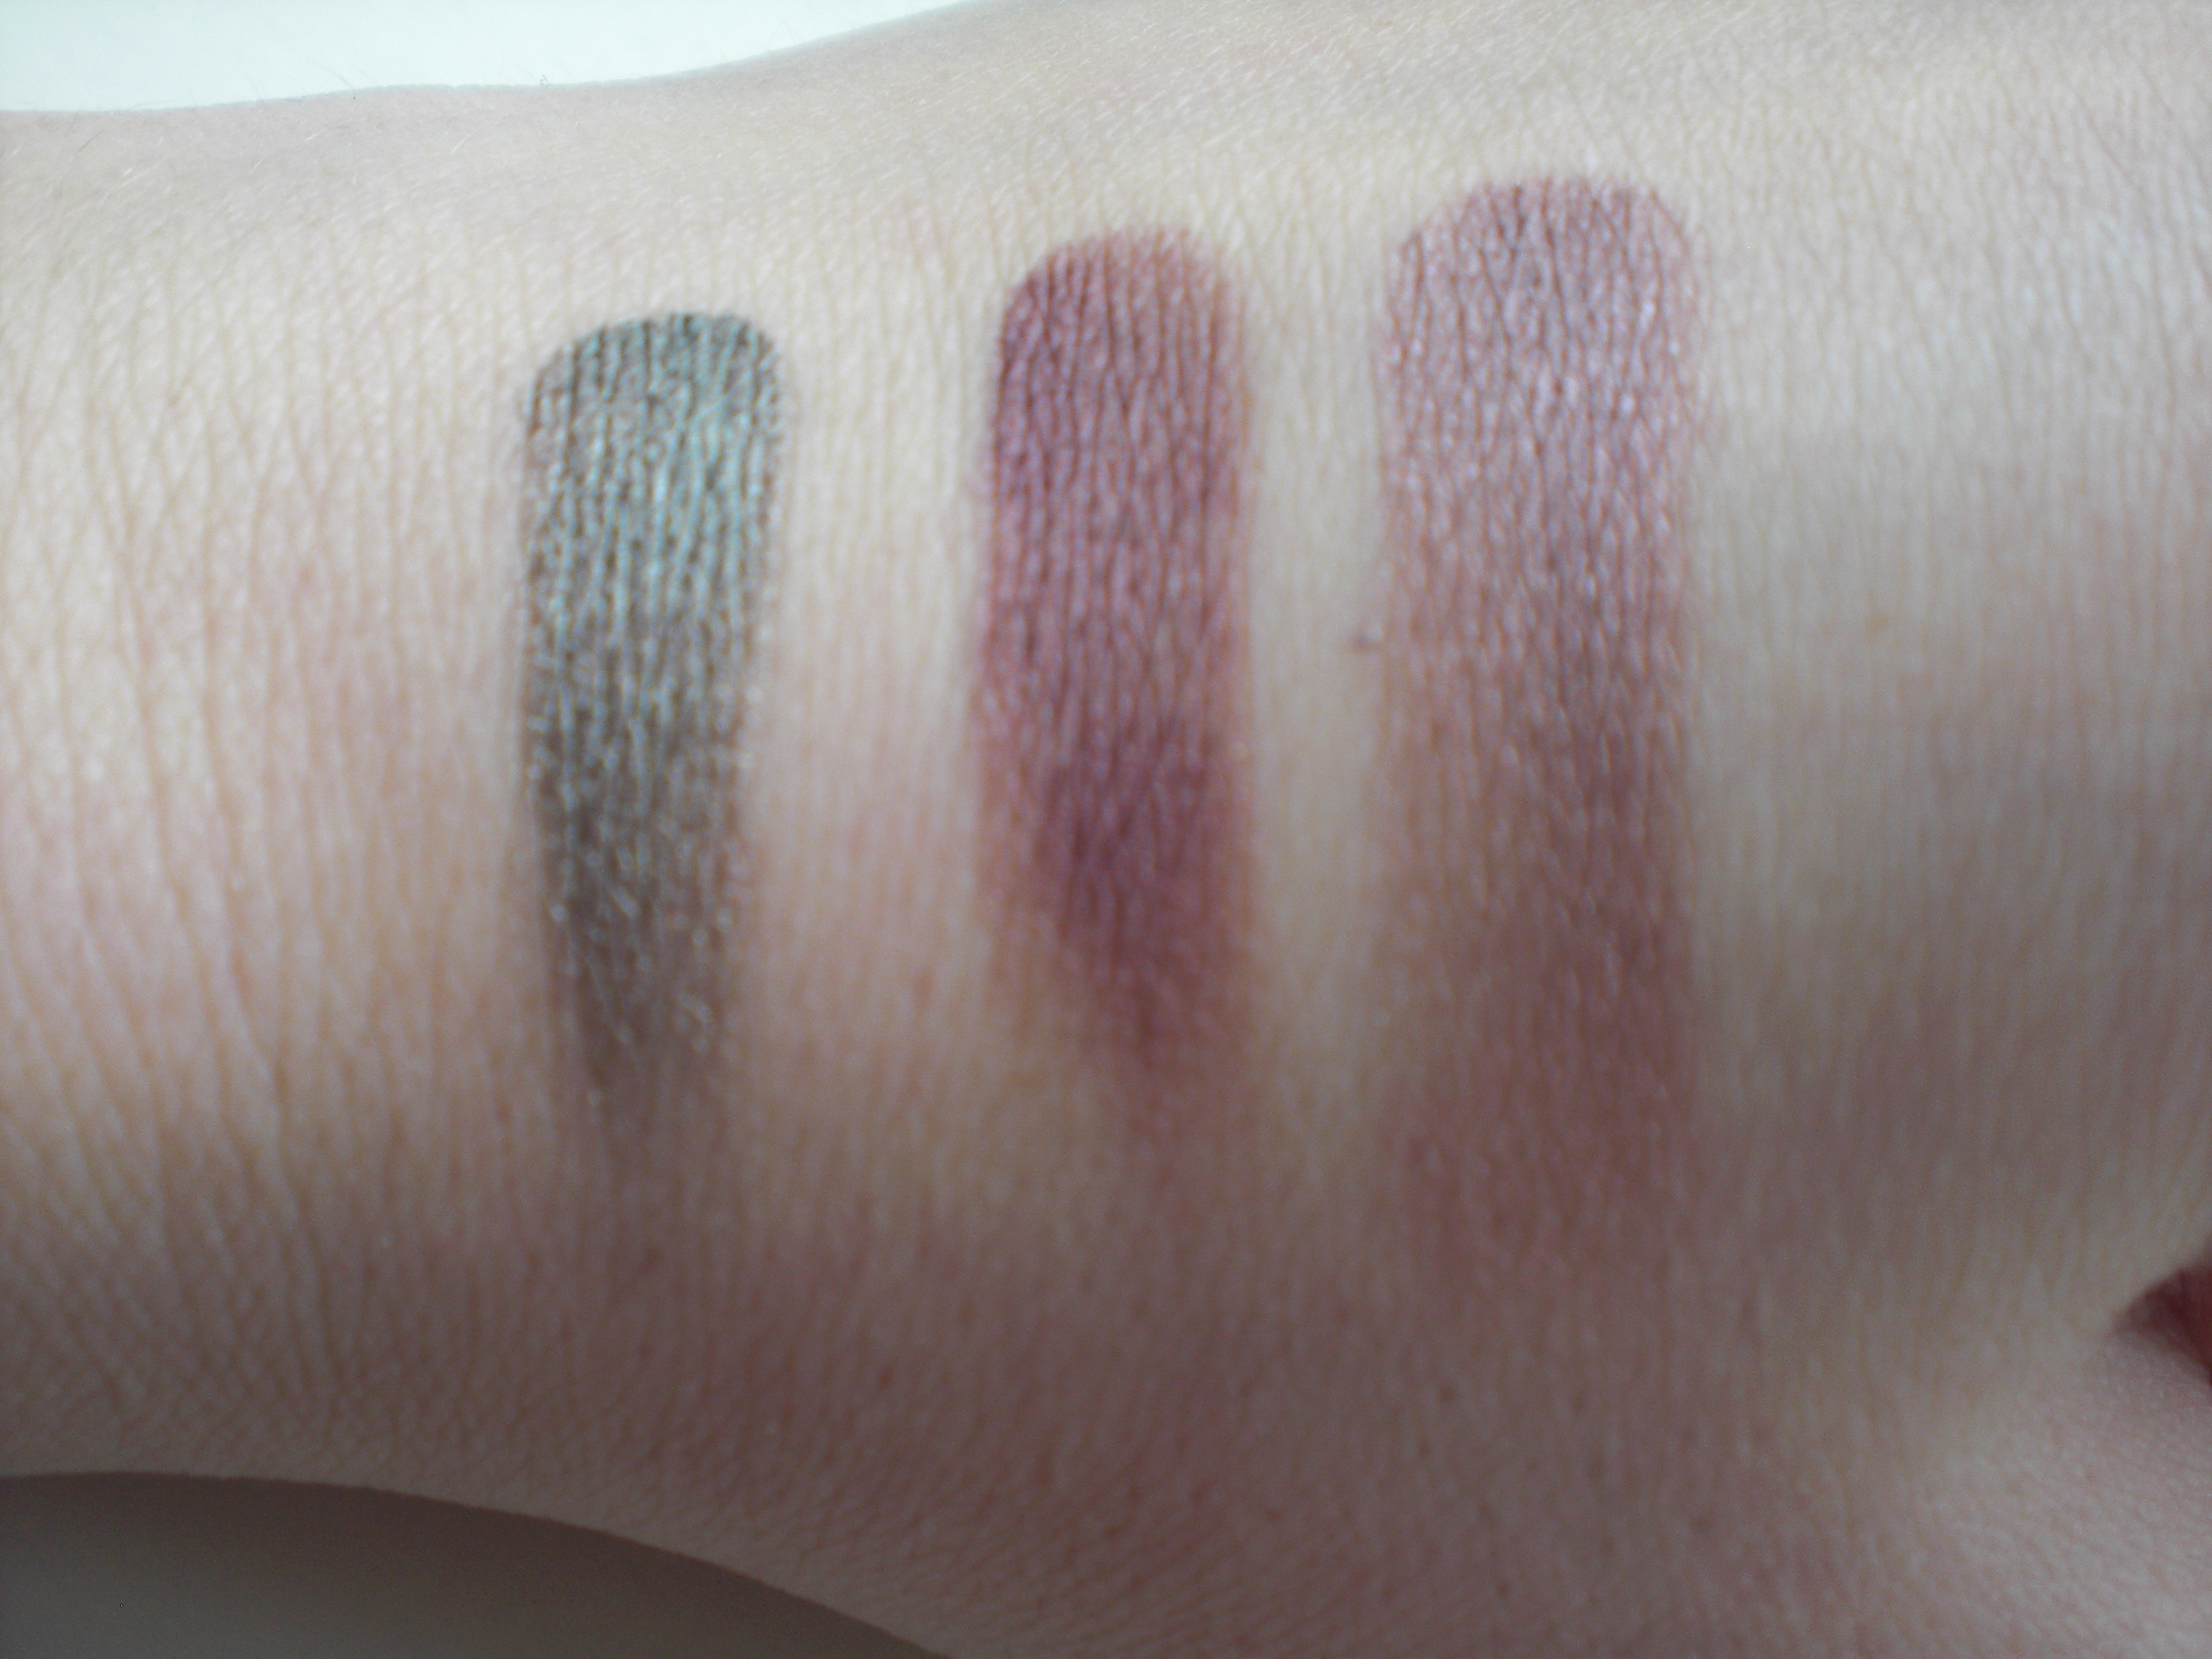 Creaseless Cream Shadow/Liner by Benefit #8